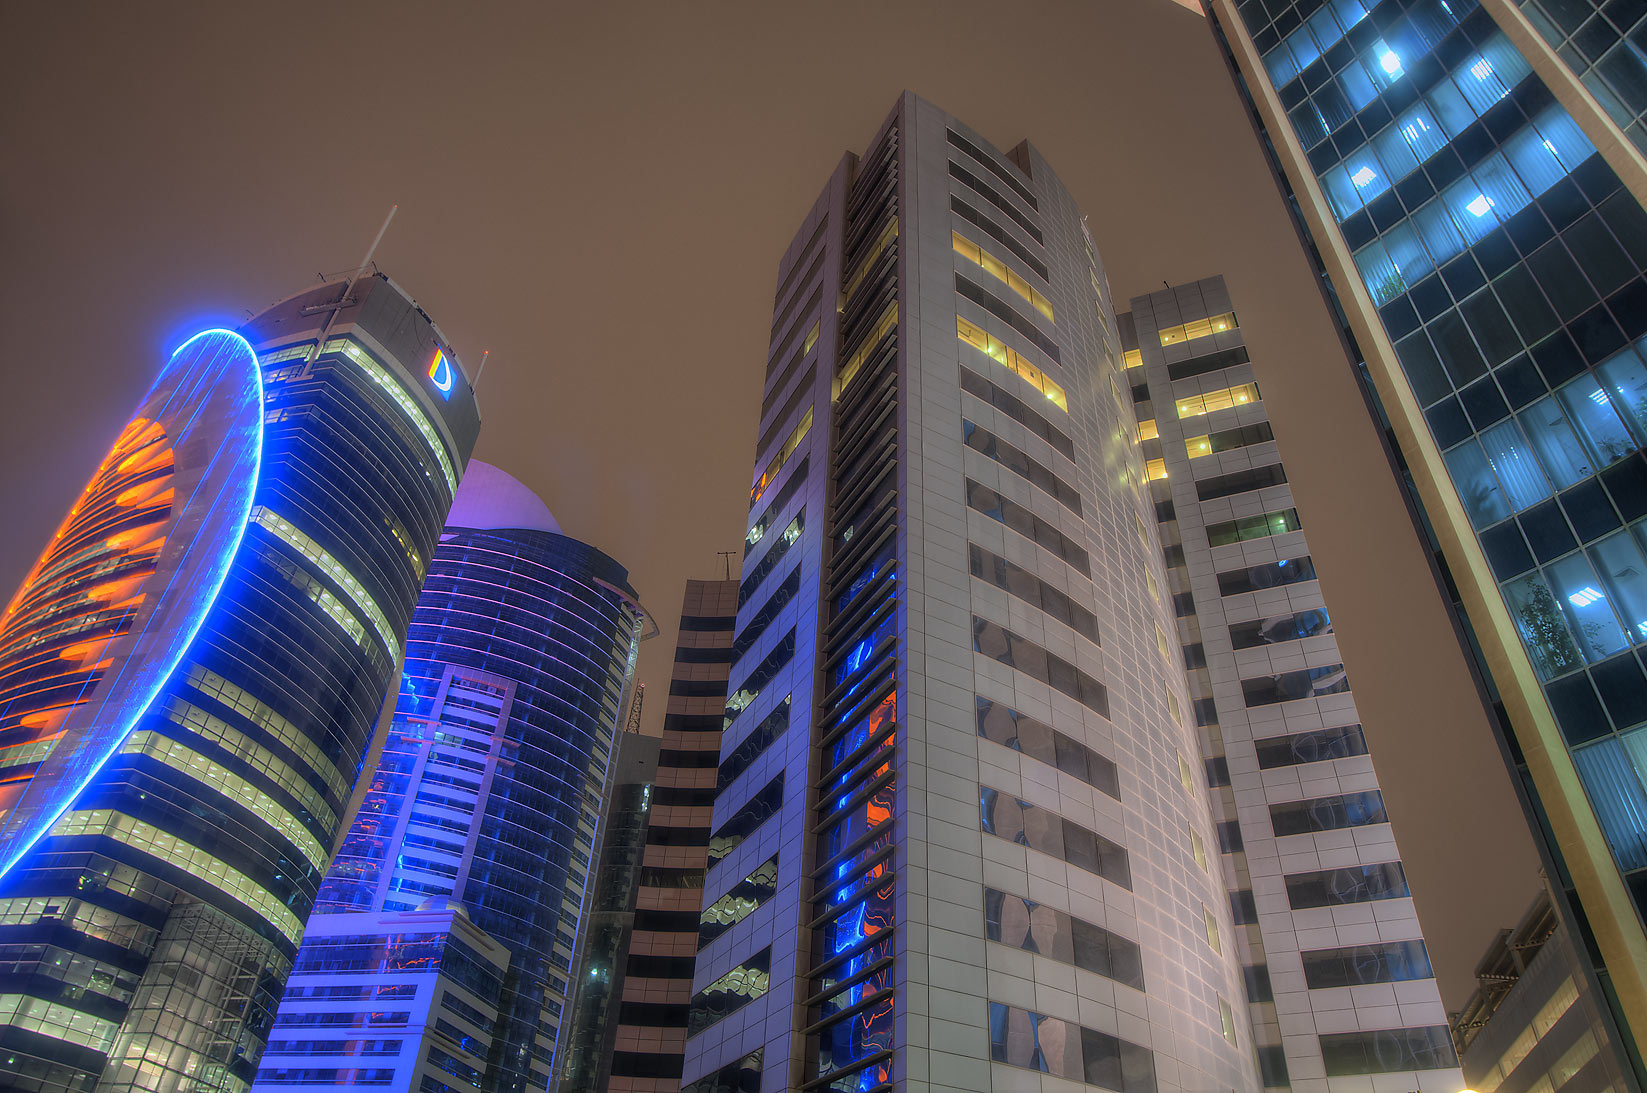 Office buildings in West Bay north from Sheraton Roundabout. Doha, Qatar